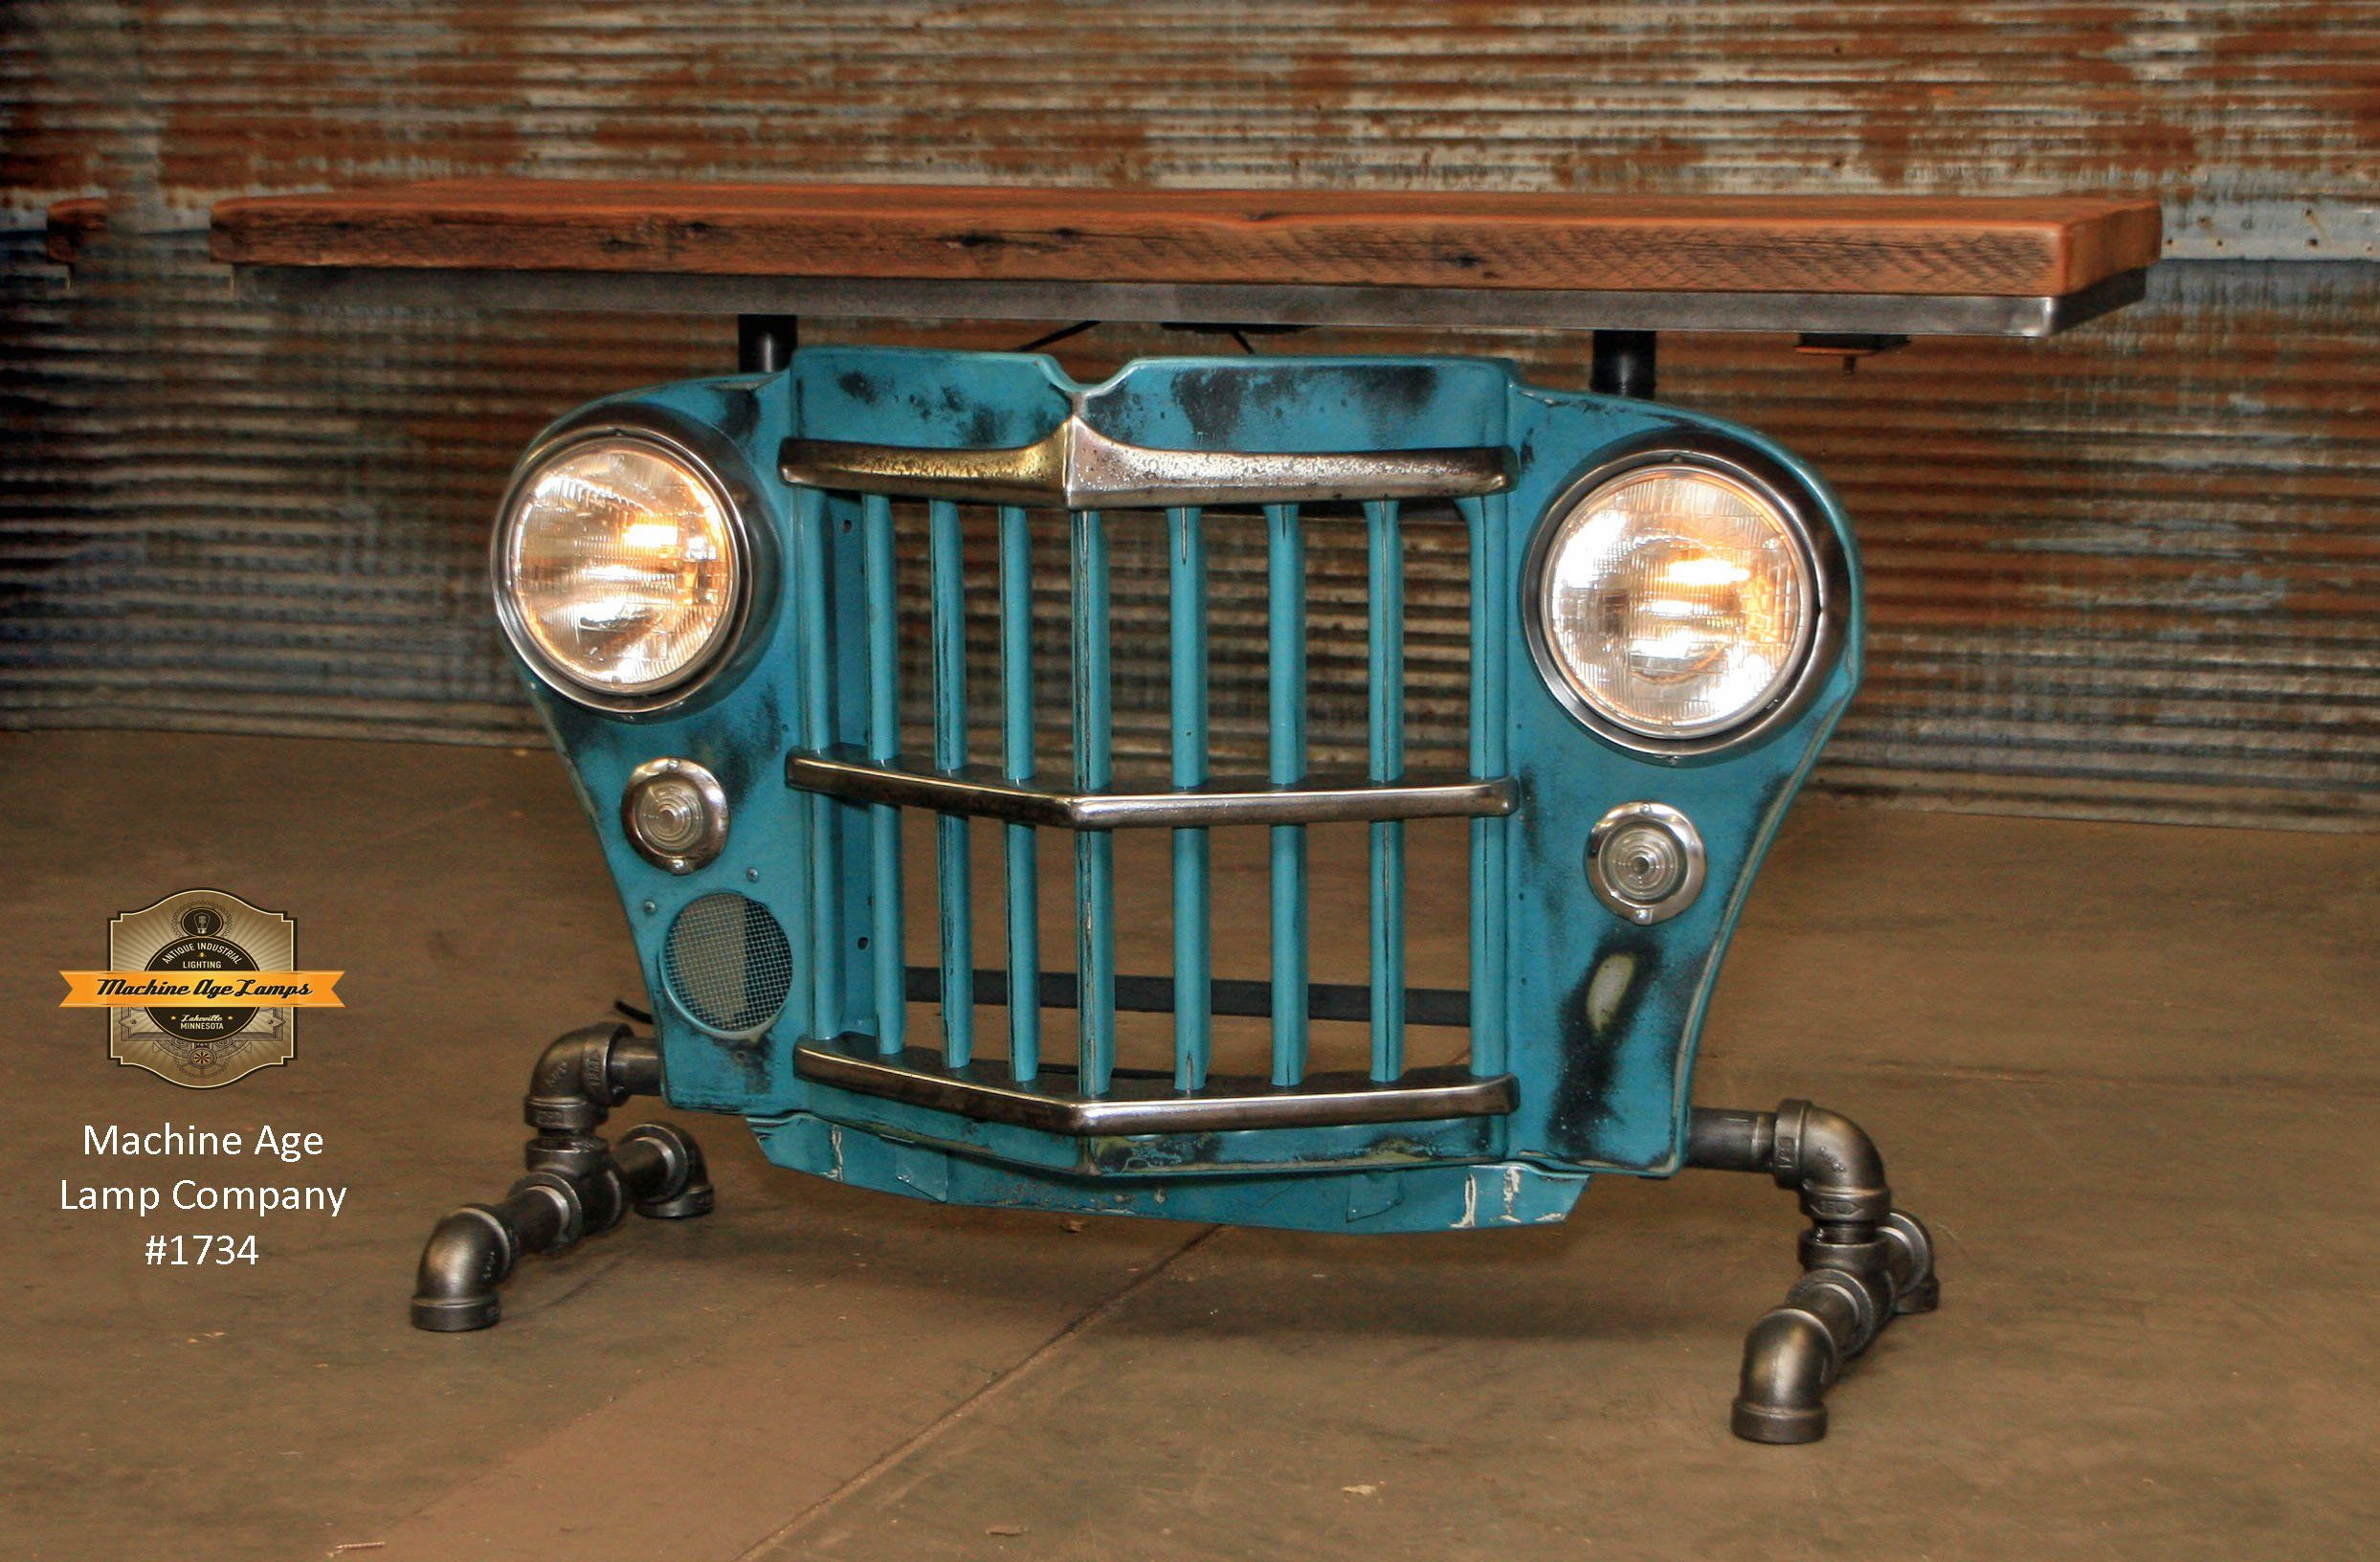 Steampunk Industrial Original Vintage 50s Jeep Willys Grille Jeeps On Filter Box Table Sofa Hallway 1734